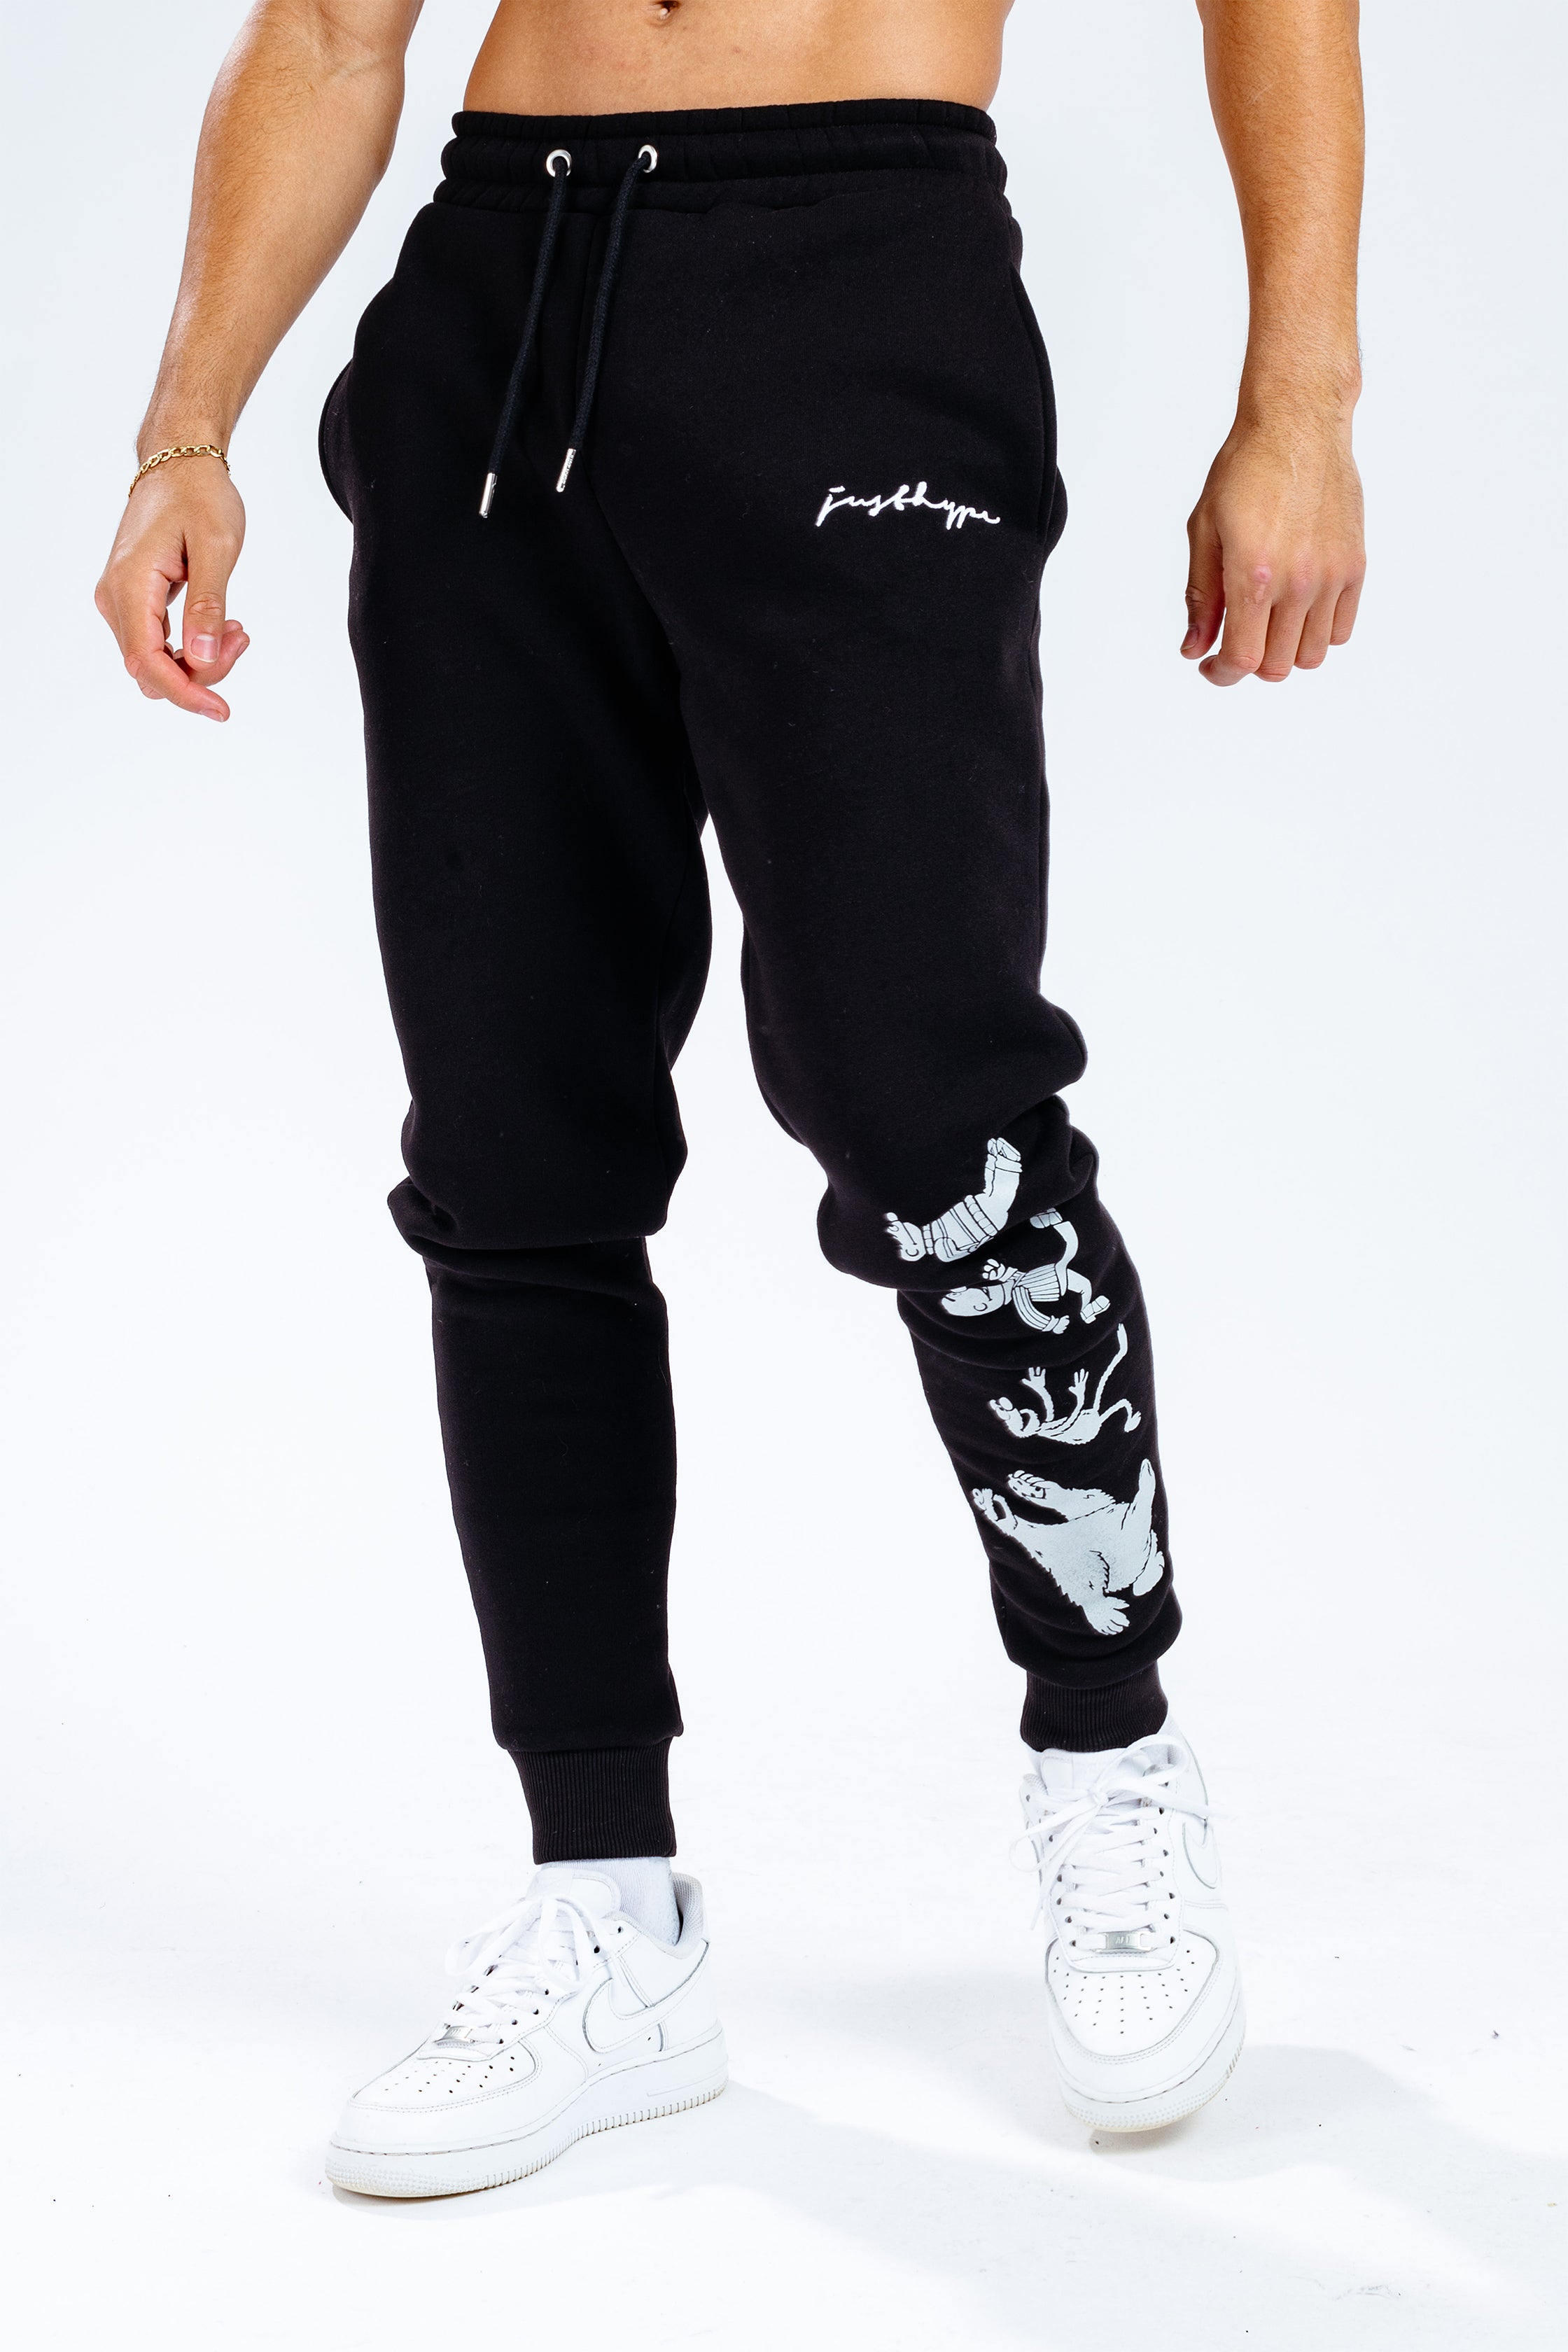 Hype X Sesame Street Black Scribble Logo Taped Character Adult Joggers | Size 2X-Large